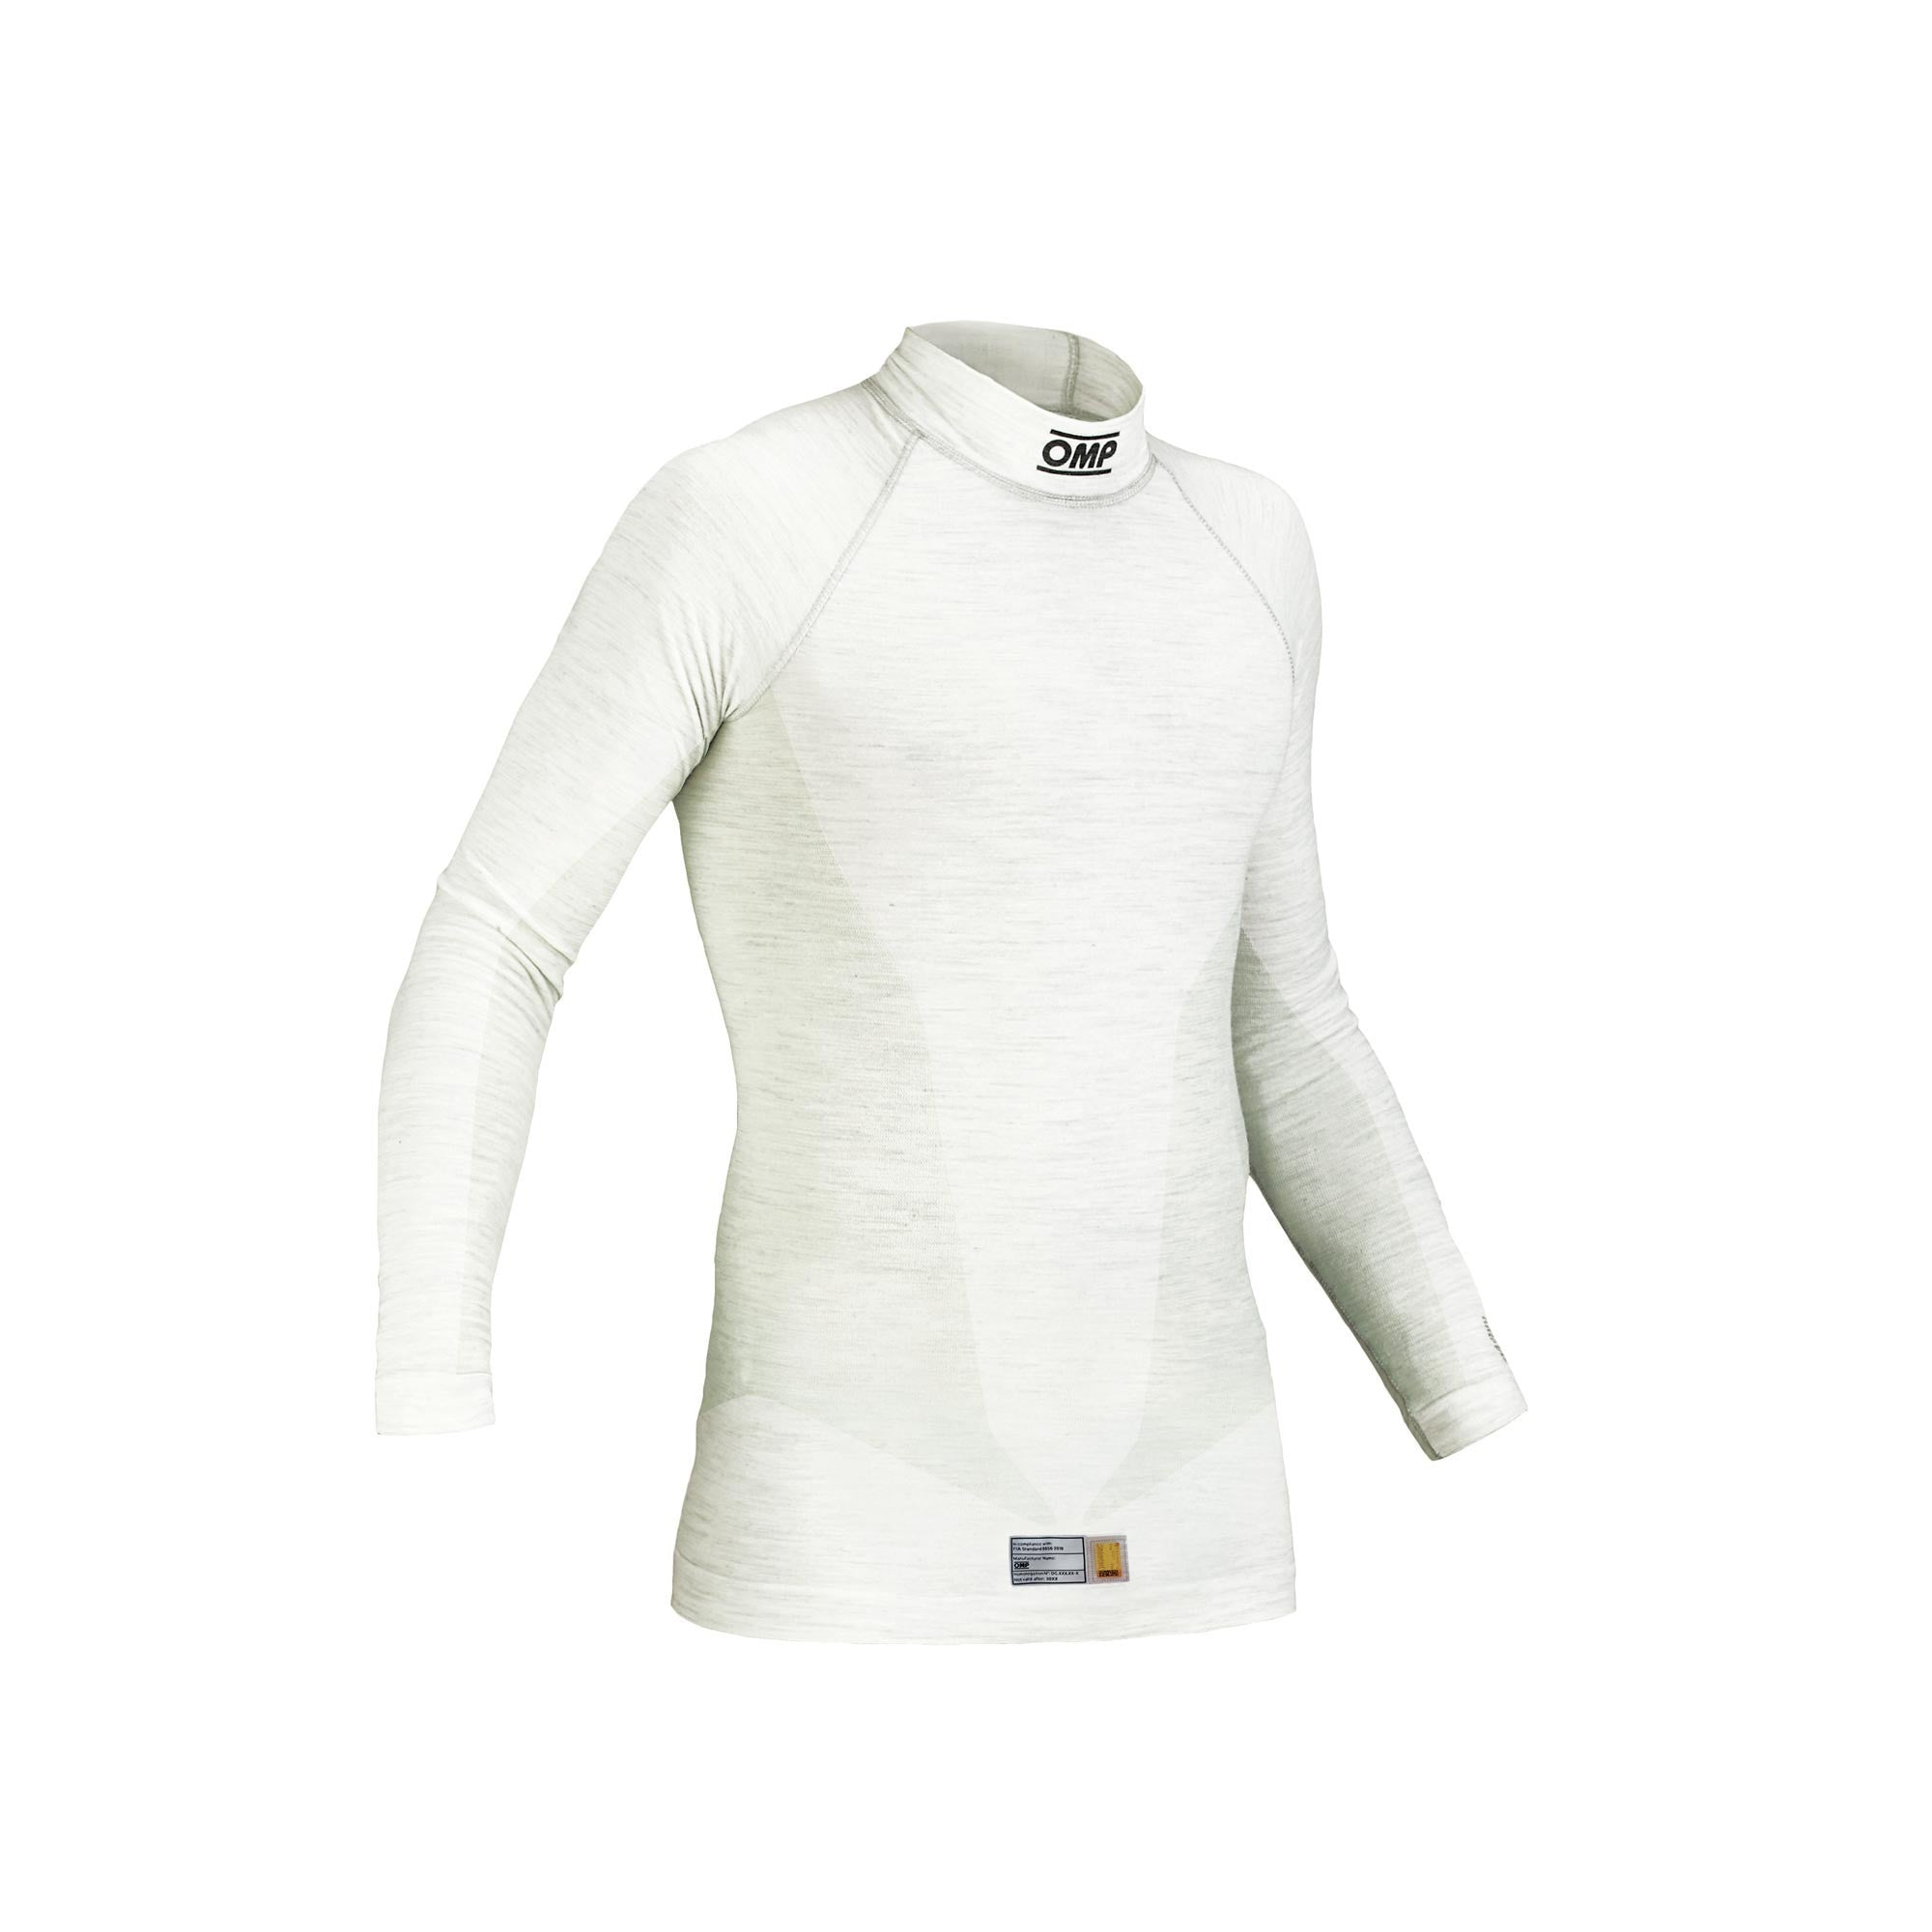 OMP NOMEX UNDER SHIRT One series